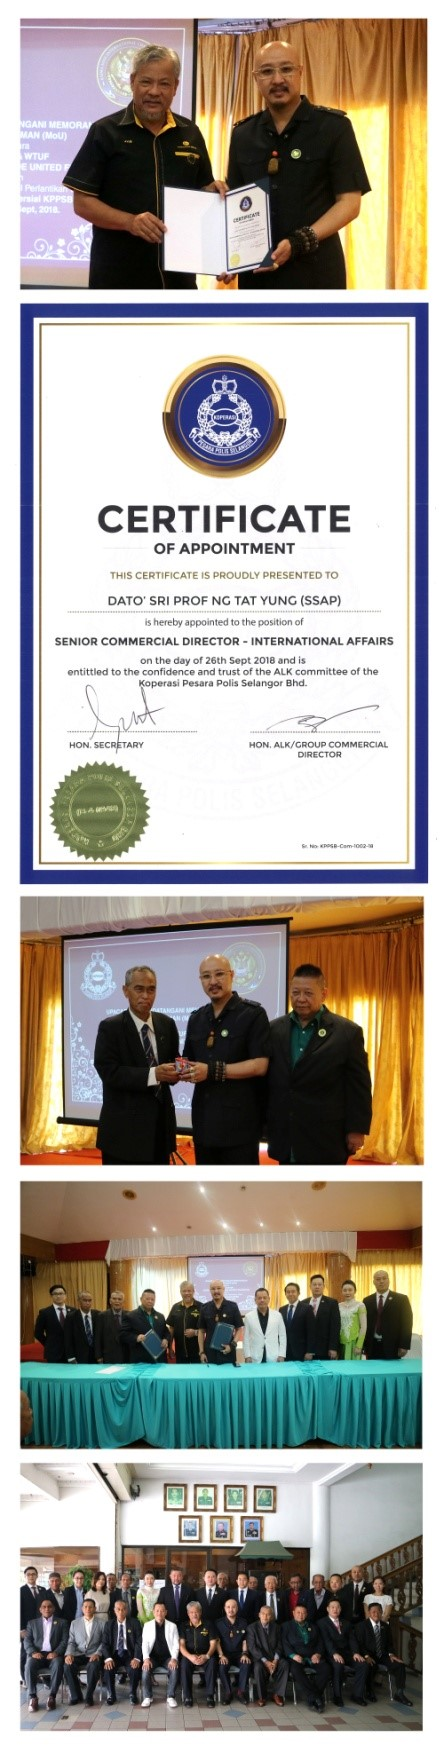 The photos of MoU signing ceremony and appointment ceremony